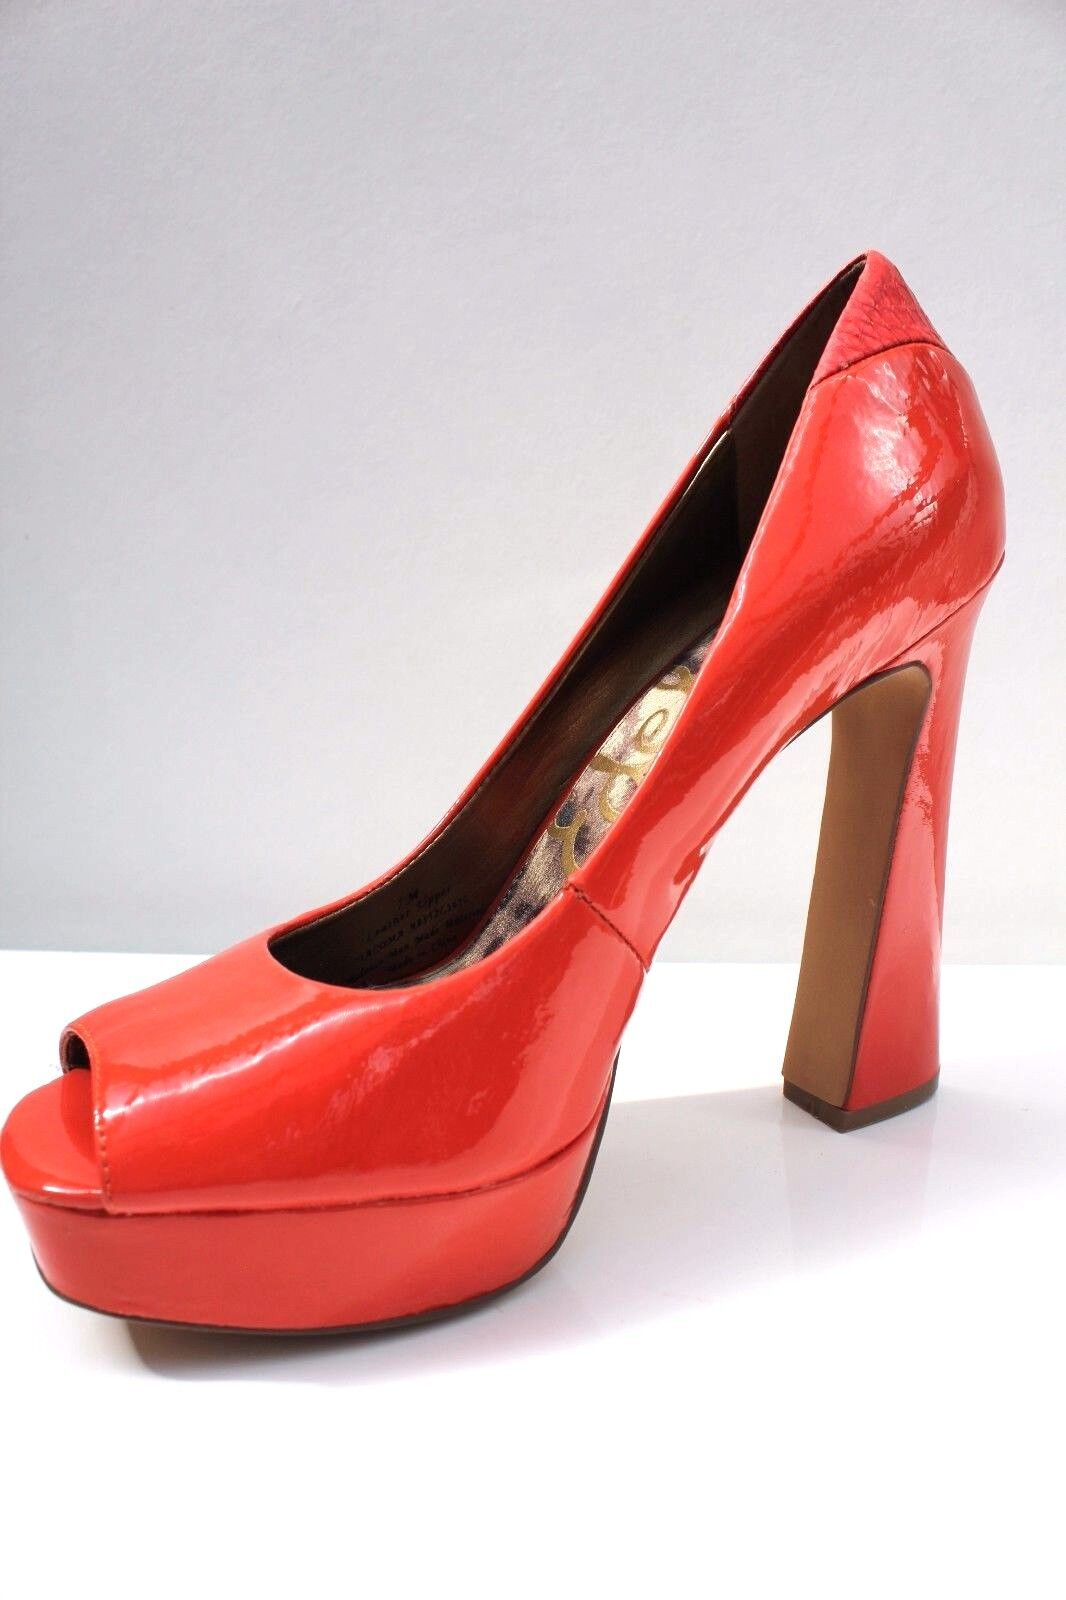 Sam Edelman Orange Platform High Heel schuhe Patent Leather Peep Toe schuhe Heel 5 38 US 7 57dd6b